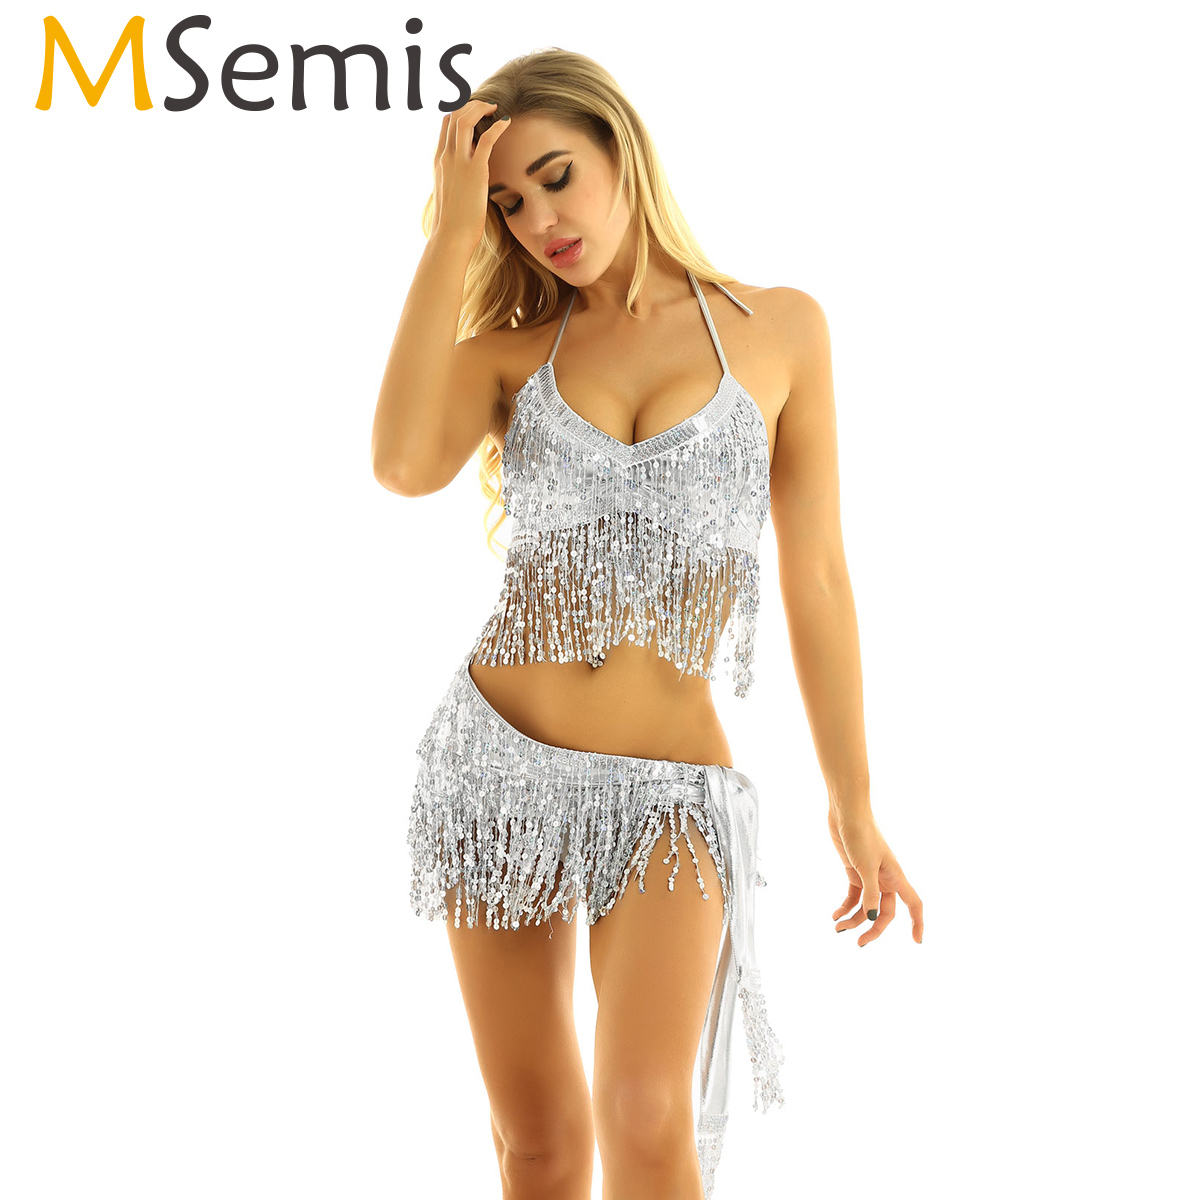 MSemis Women Pole Dance Bra Top Hip Scarf Wrap Skirts Carnival Rave Festival Clothing Shiny Sequin Tassels Belly Dance Costume